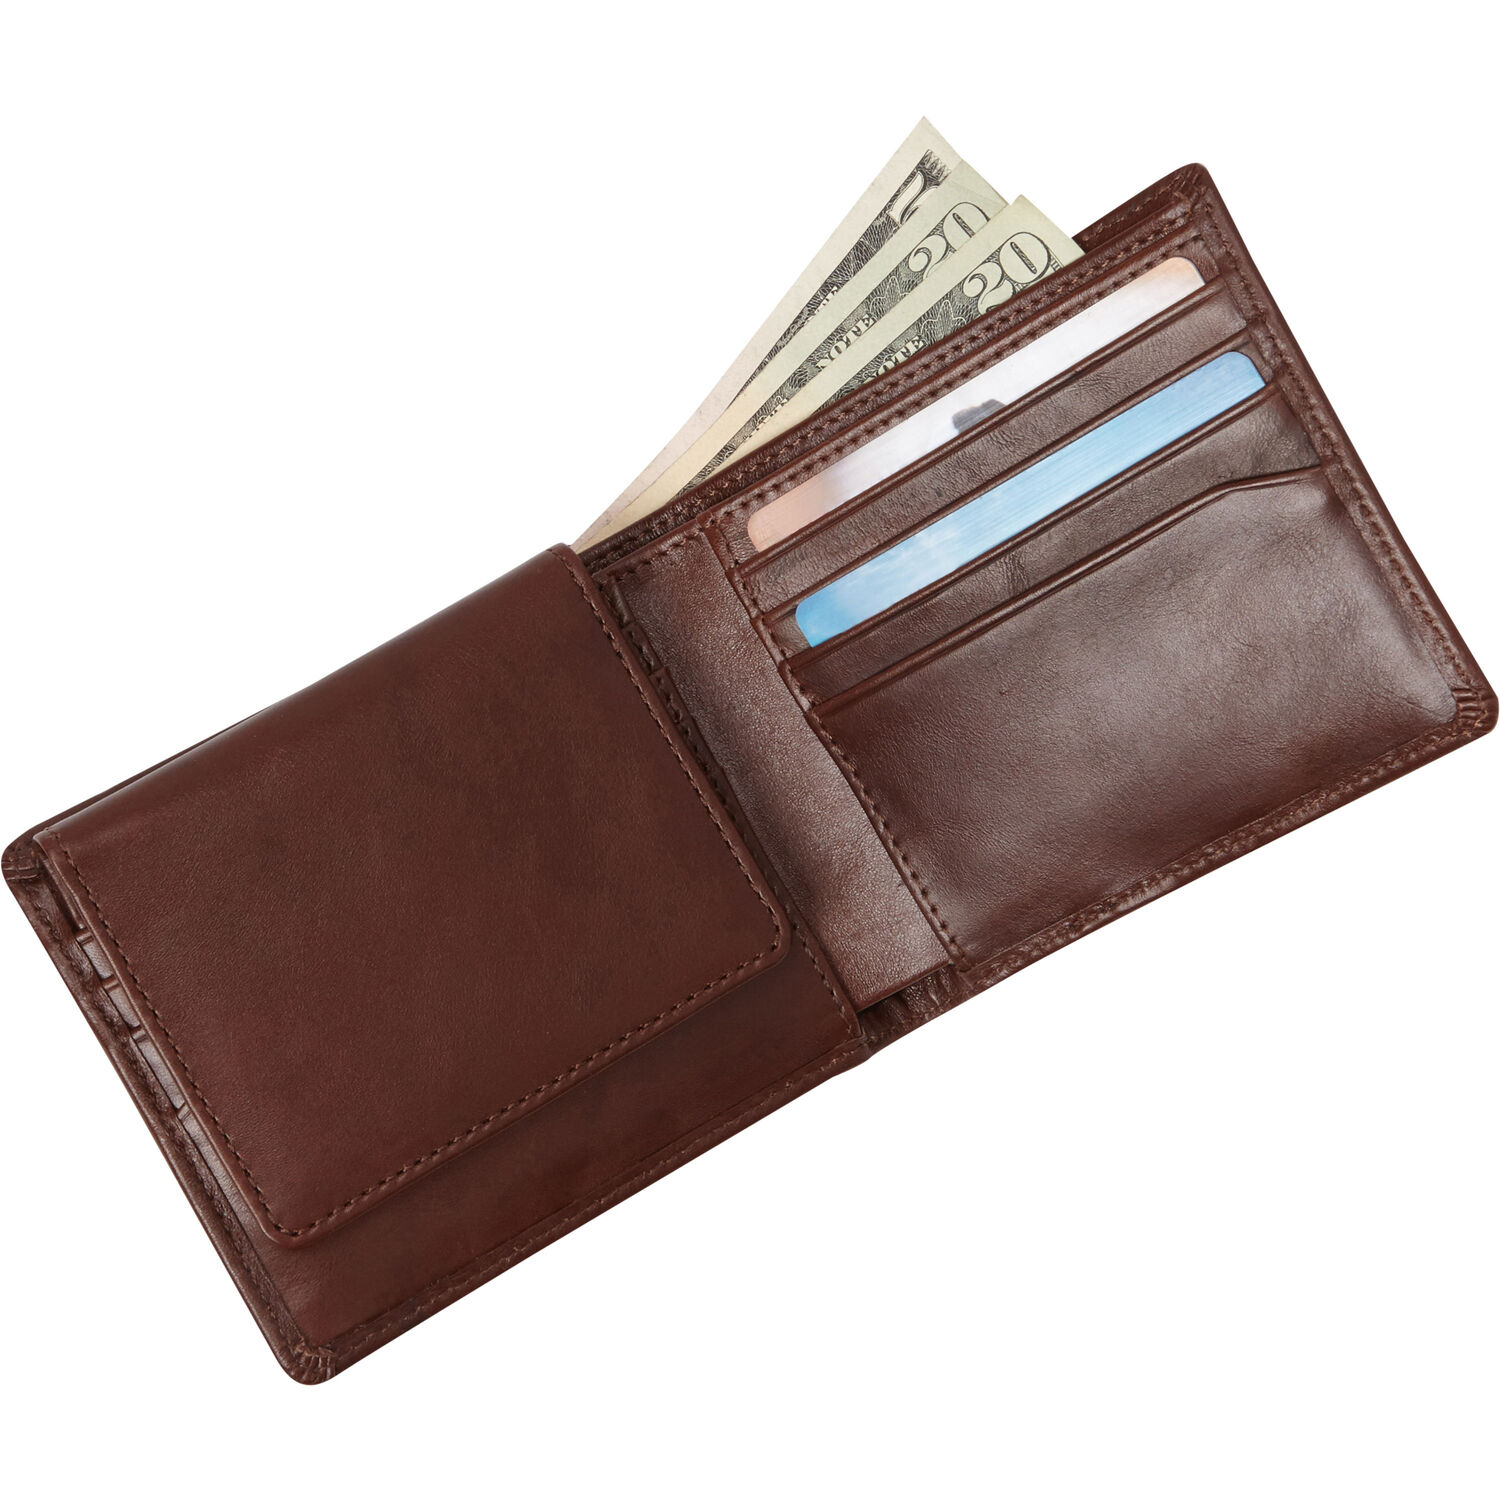 93cbb798667 Samsonite Mens Leather 2 Compartment Wallet with Removable ID Case in the  color Chestnut.